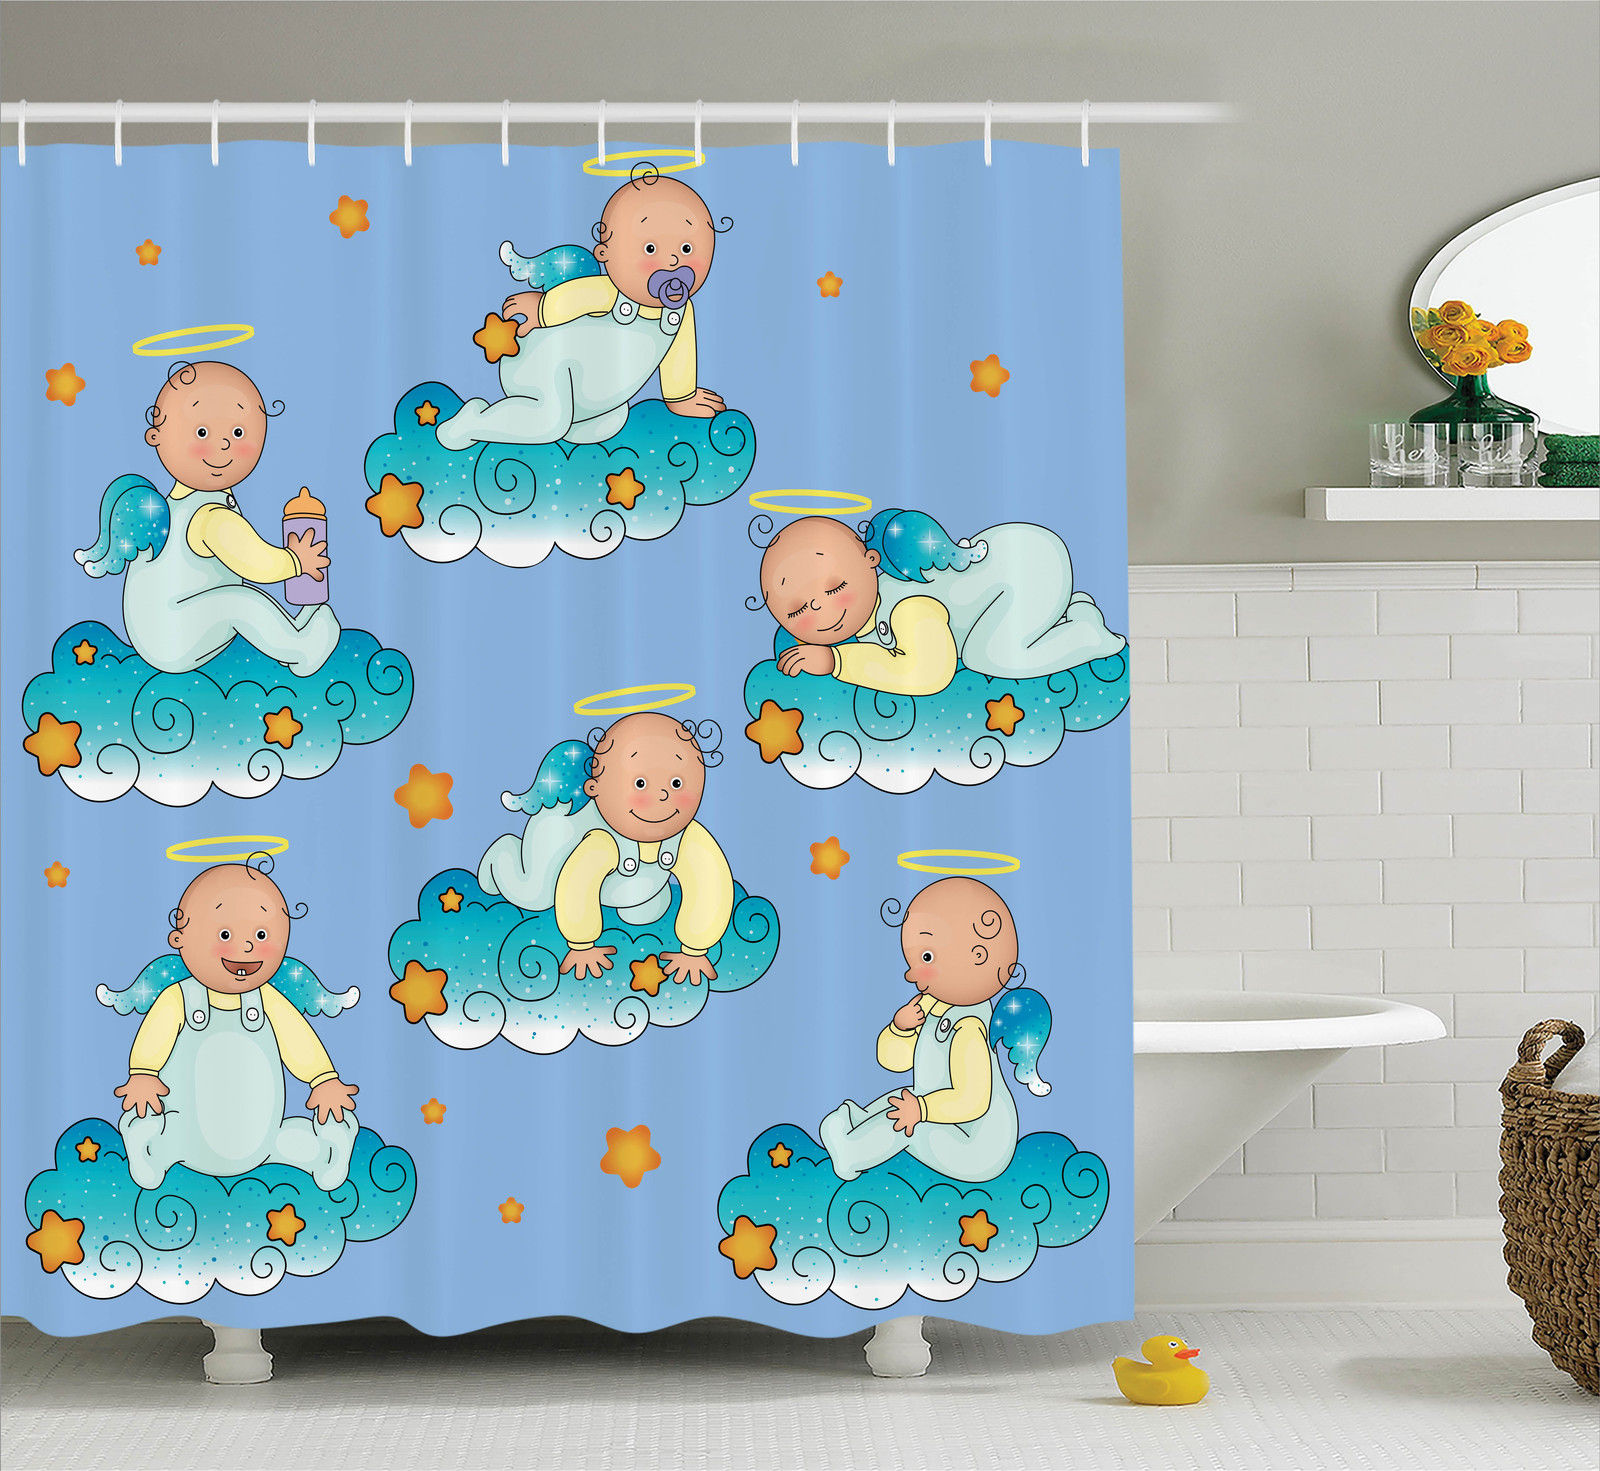 Baptism Decorations  Baptism Sitting Sleeping Crawling Smiling Babies On Clouds Catholic Children Party, Bathroom Accessories, 69W X 84L Inches Extra Long, By Ambesonne